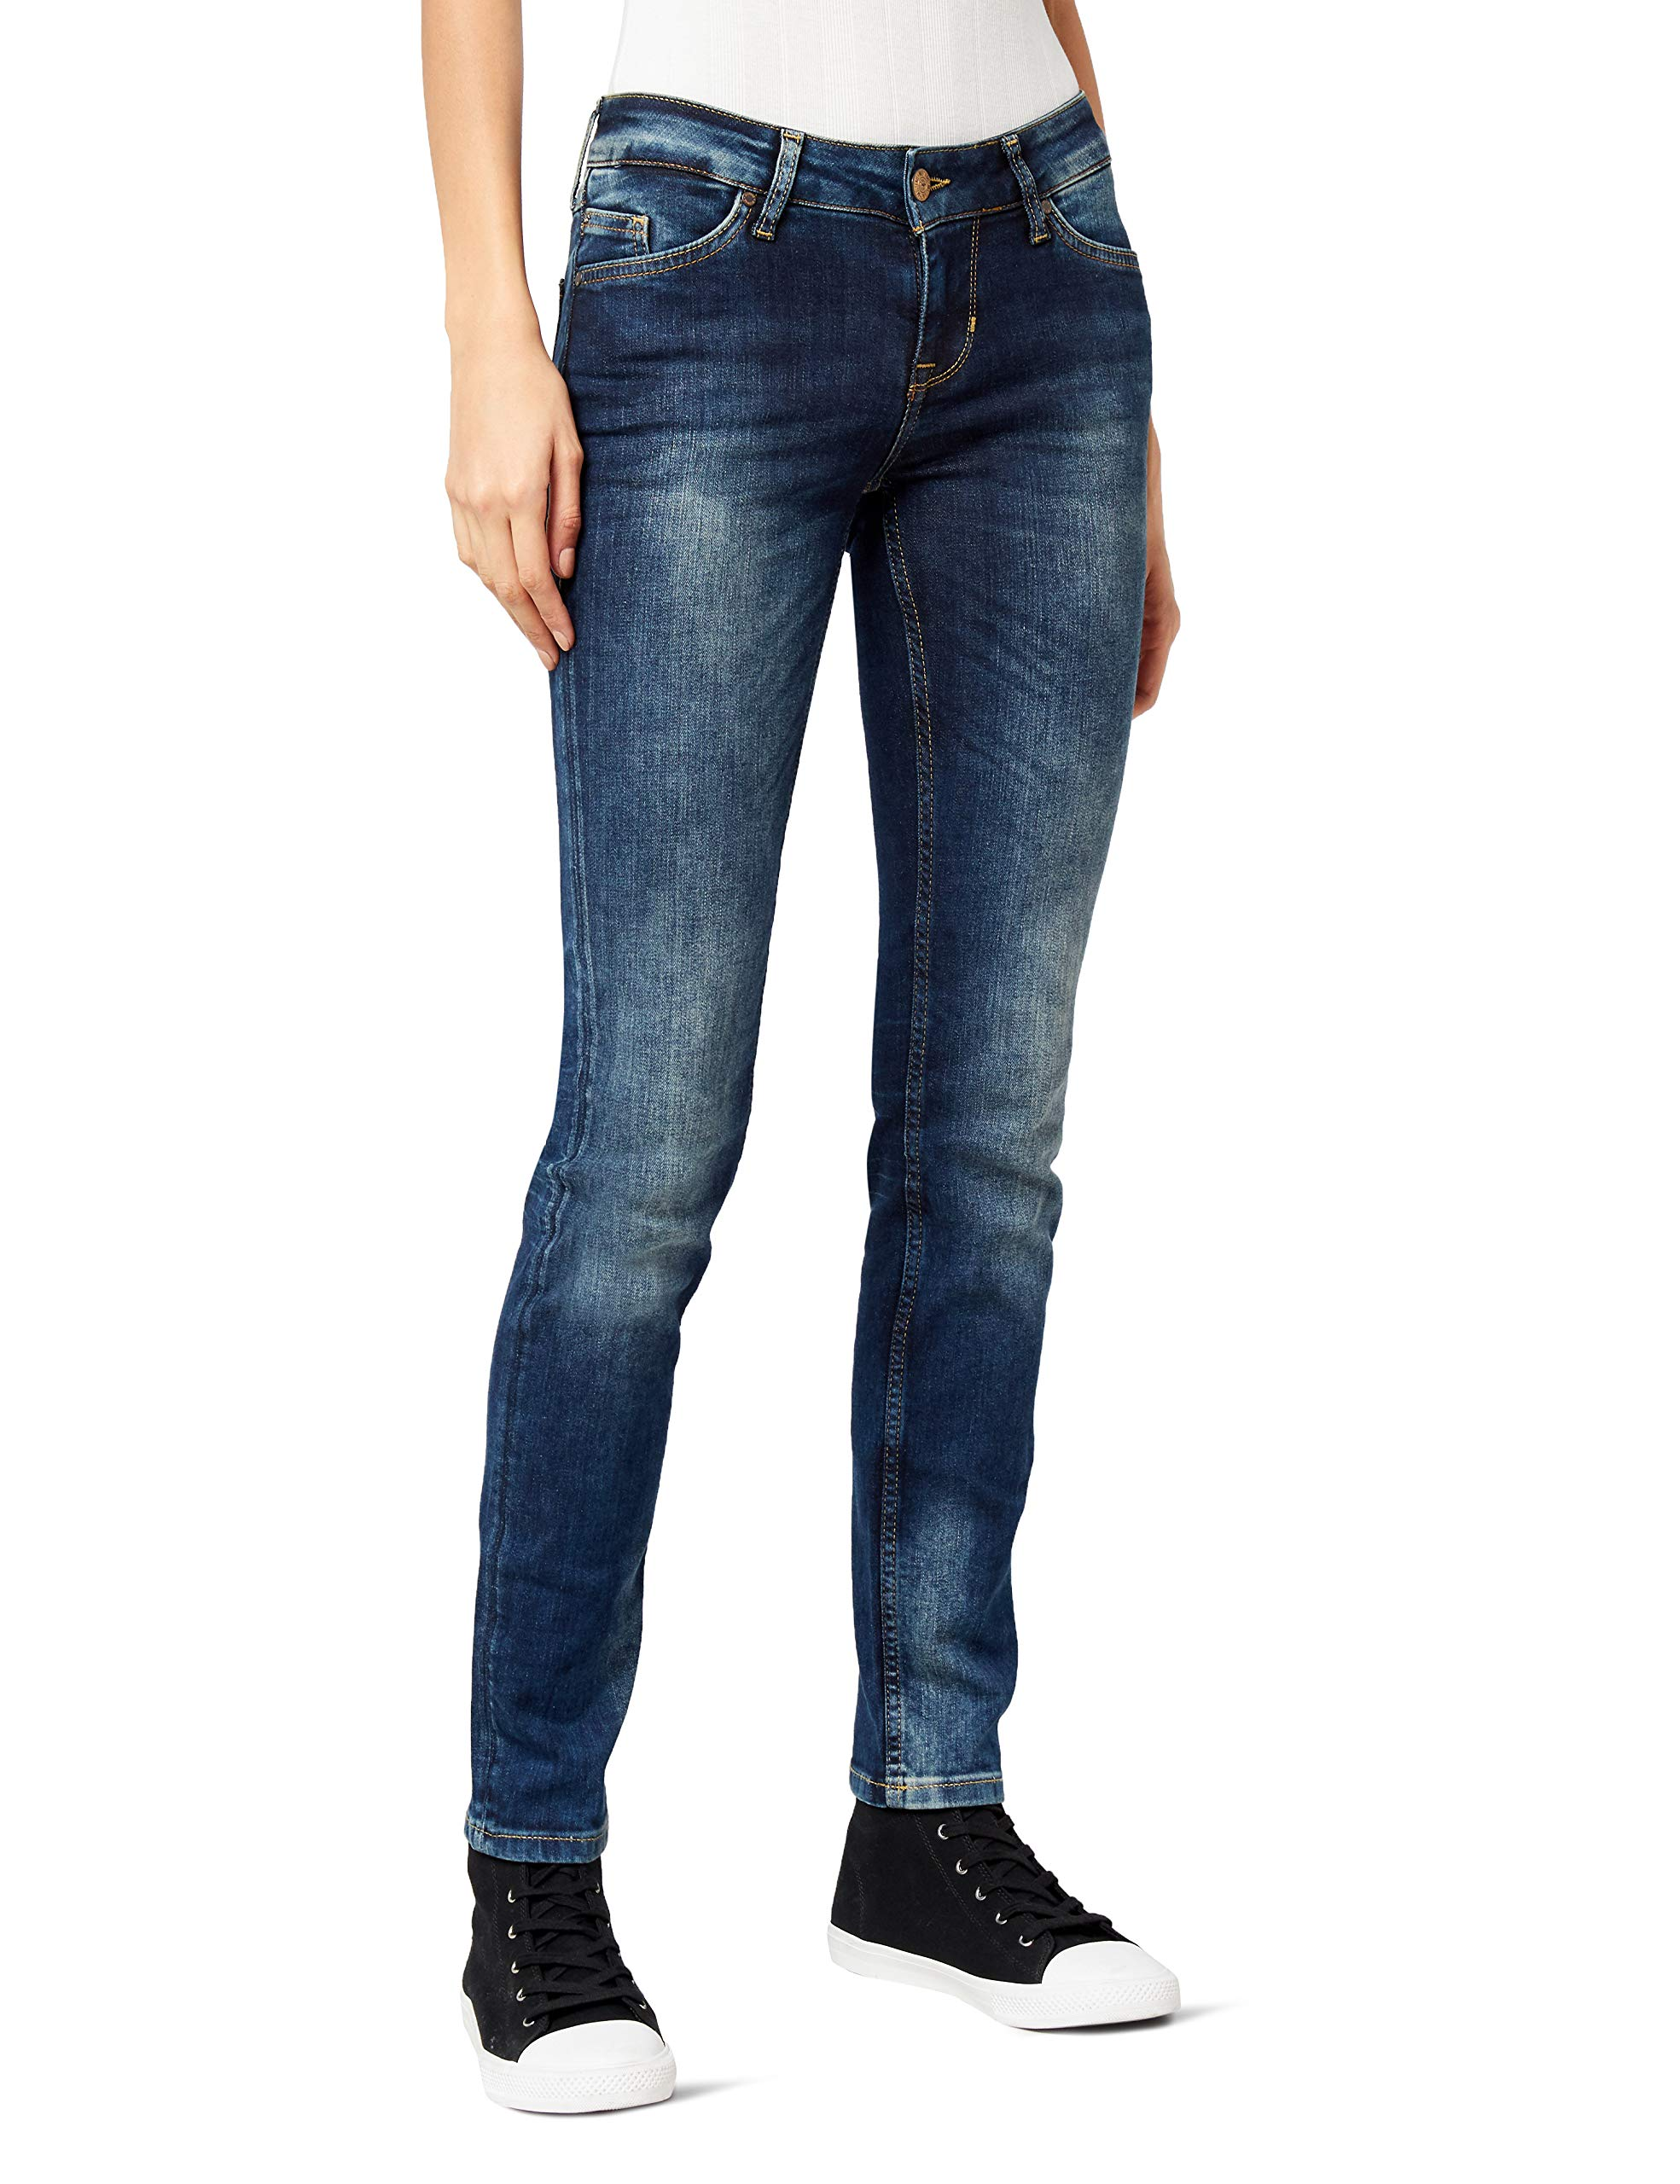 Mustang Jasmin Used l32taille JeansBleudark 32Femme 586W27 Fabricant27 9ID2YEWH